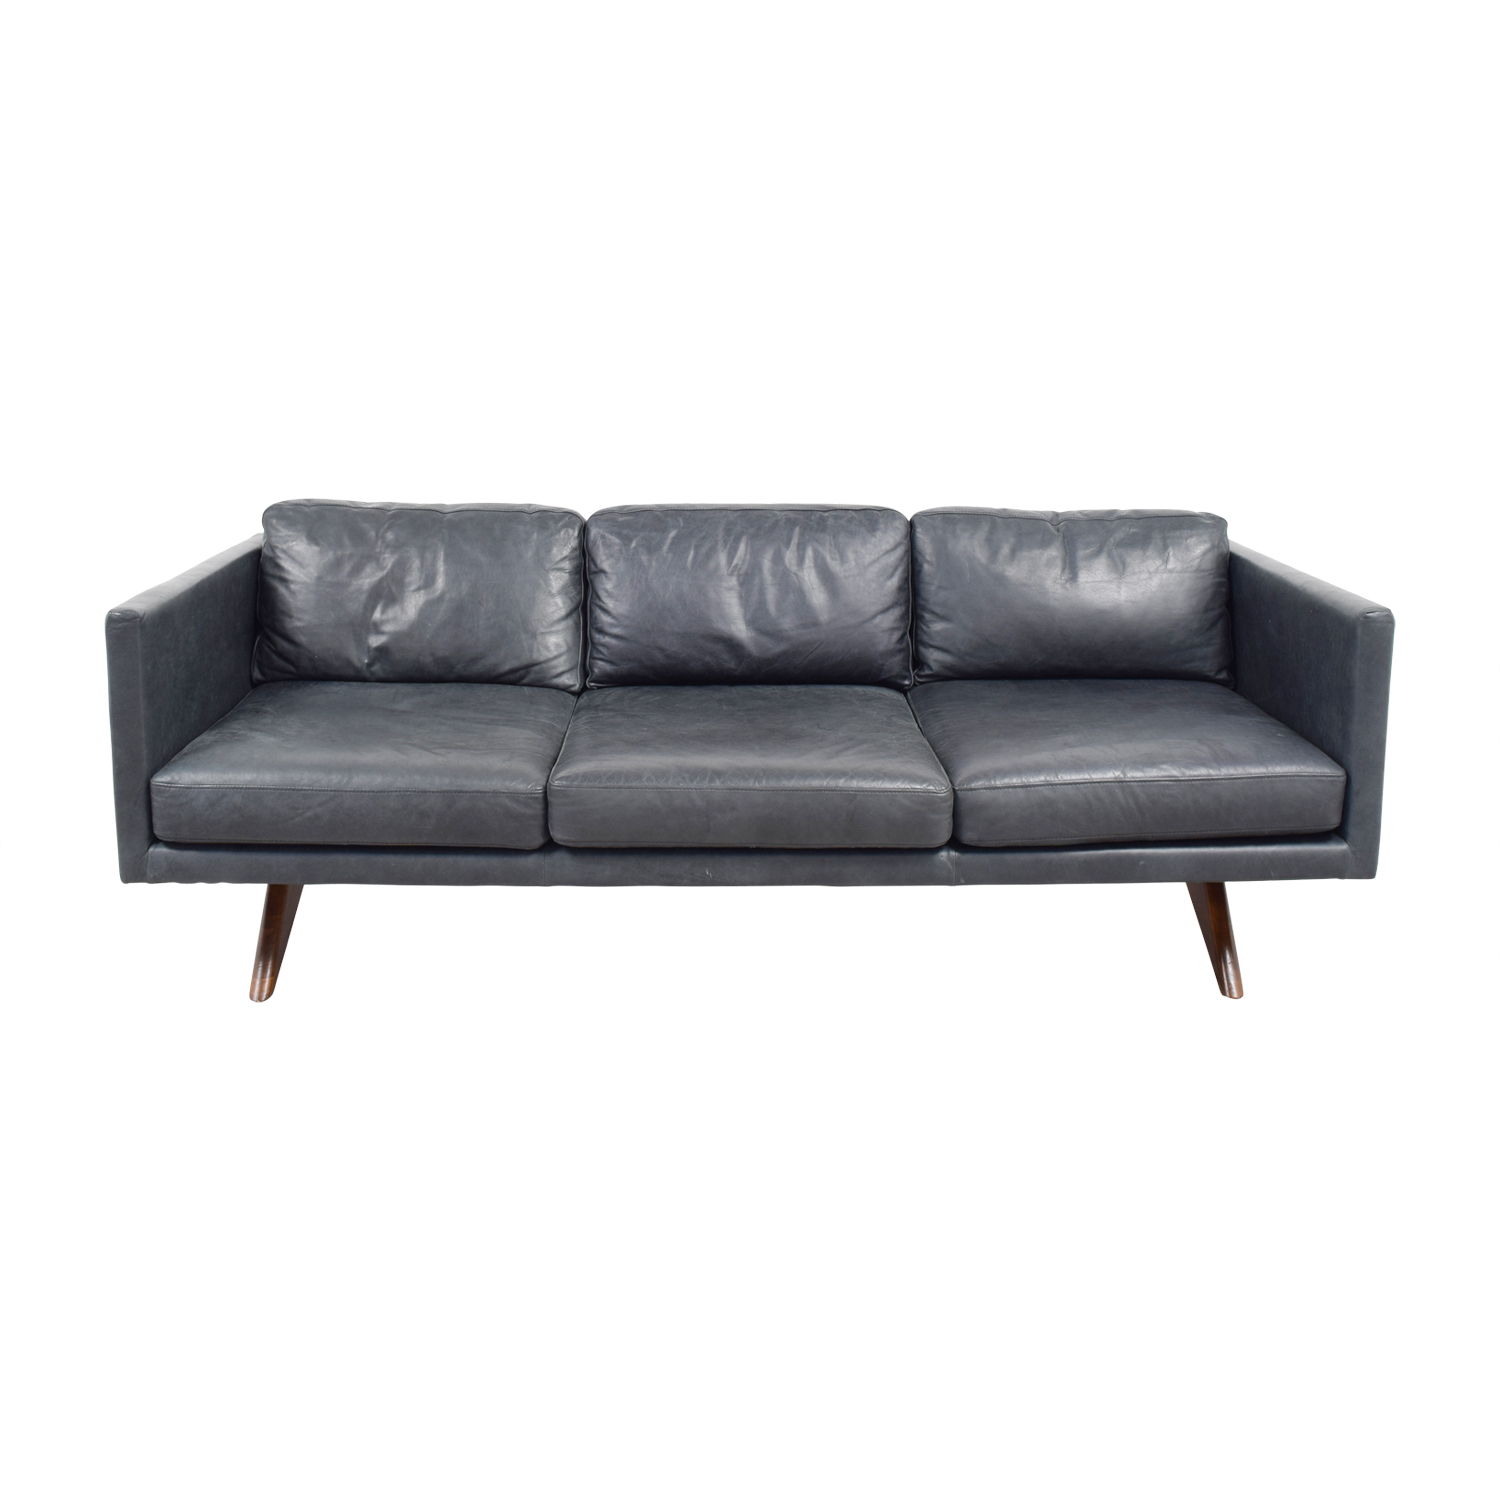 West Elm West Elm Brooklyn Grey Leather Three-Cushion Sofa Classic Sofas